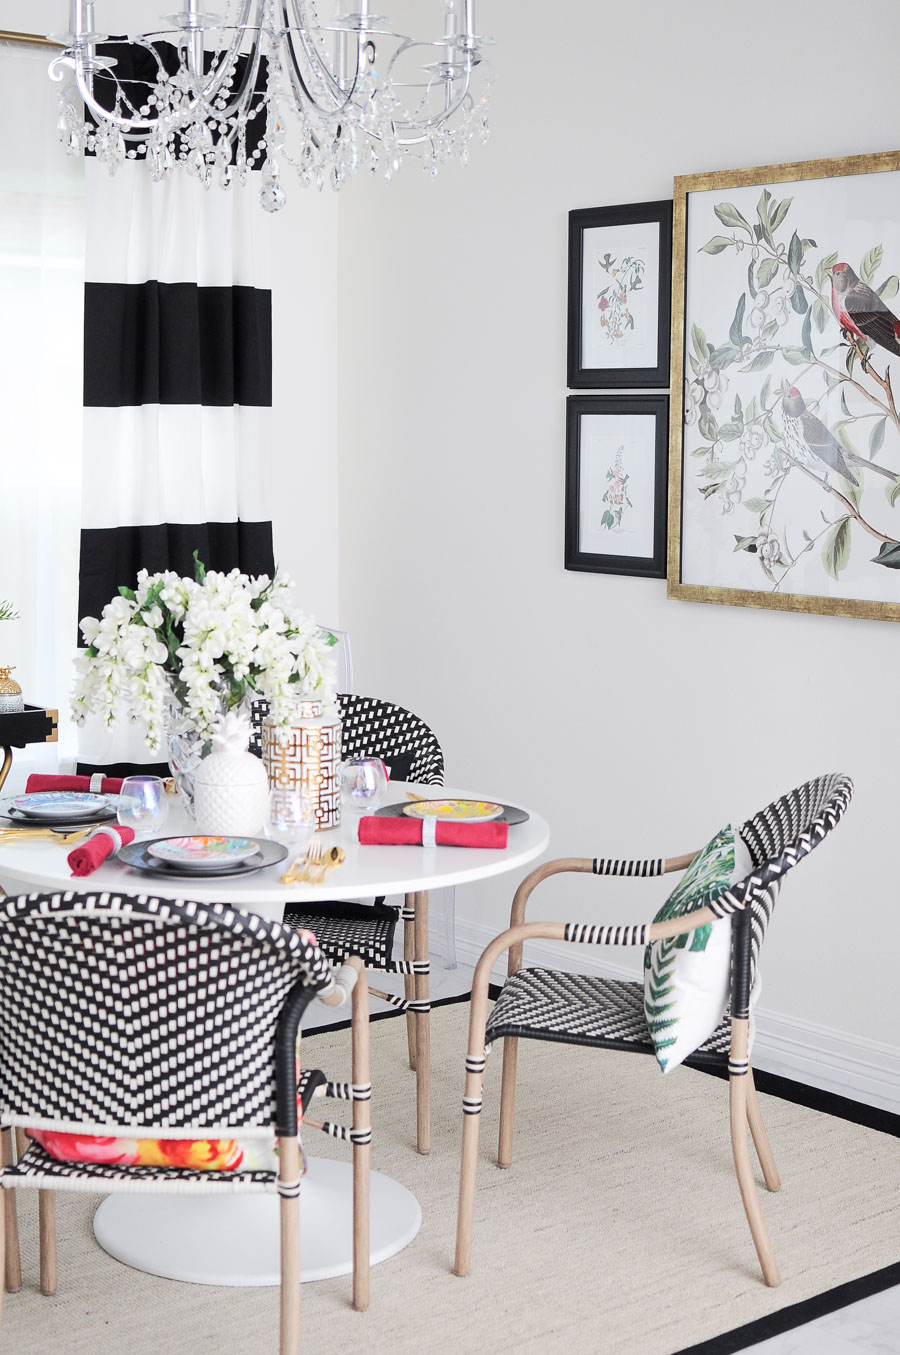 A small dining space gets an upgrade with $44 Parisian bistro chairs that are chic and casual. Small space living can feel grand.